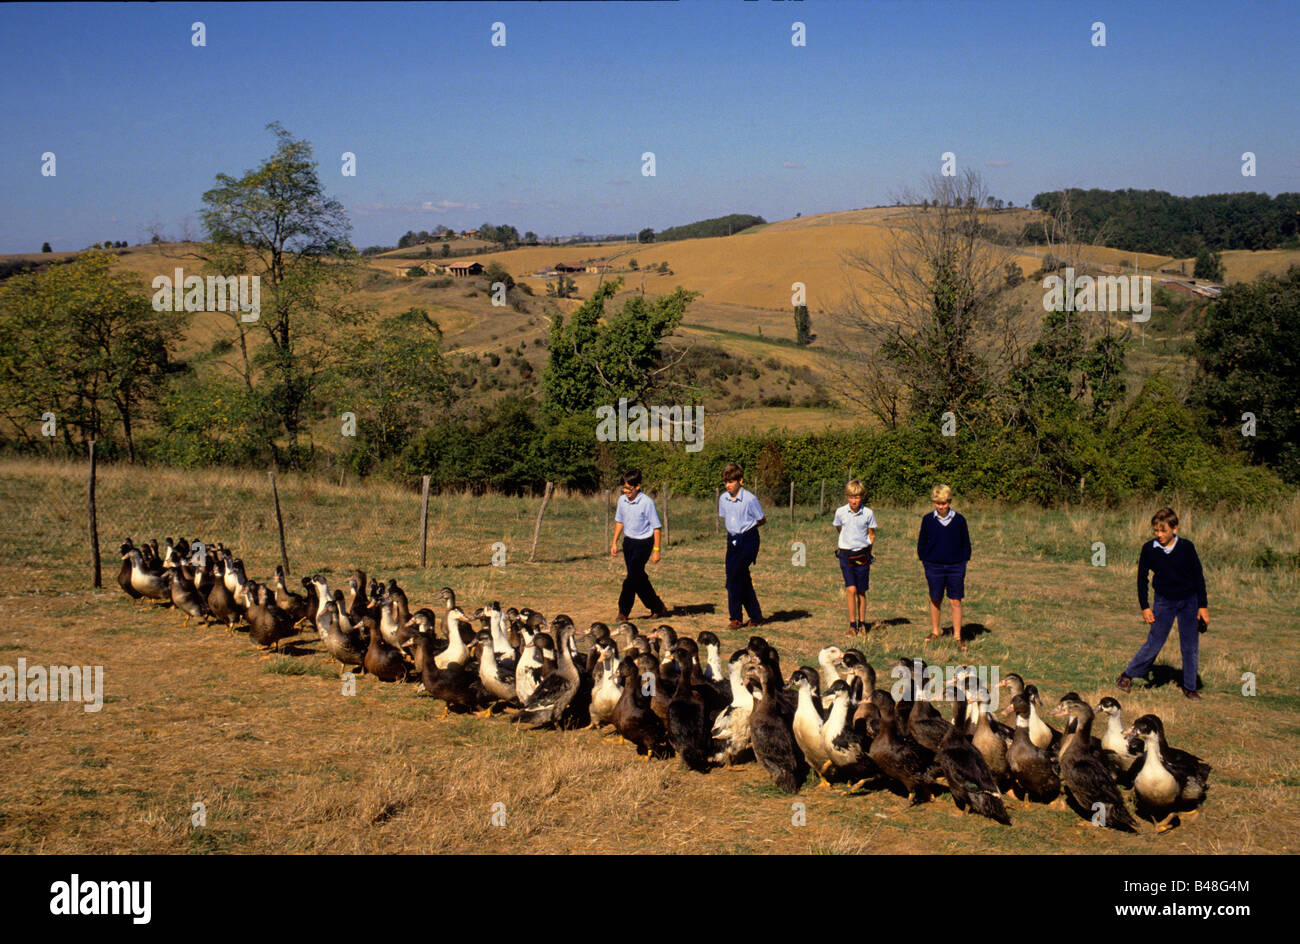 Boys make a school visit to a free-range Foie Gras duck farm near Toulouse. - Stock Image